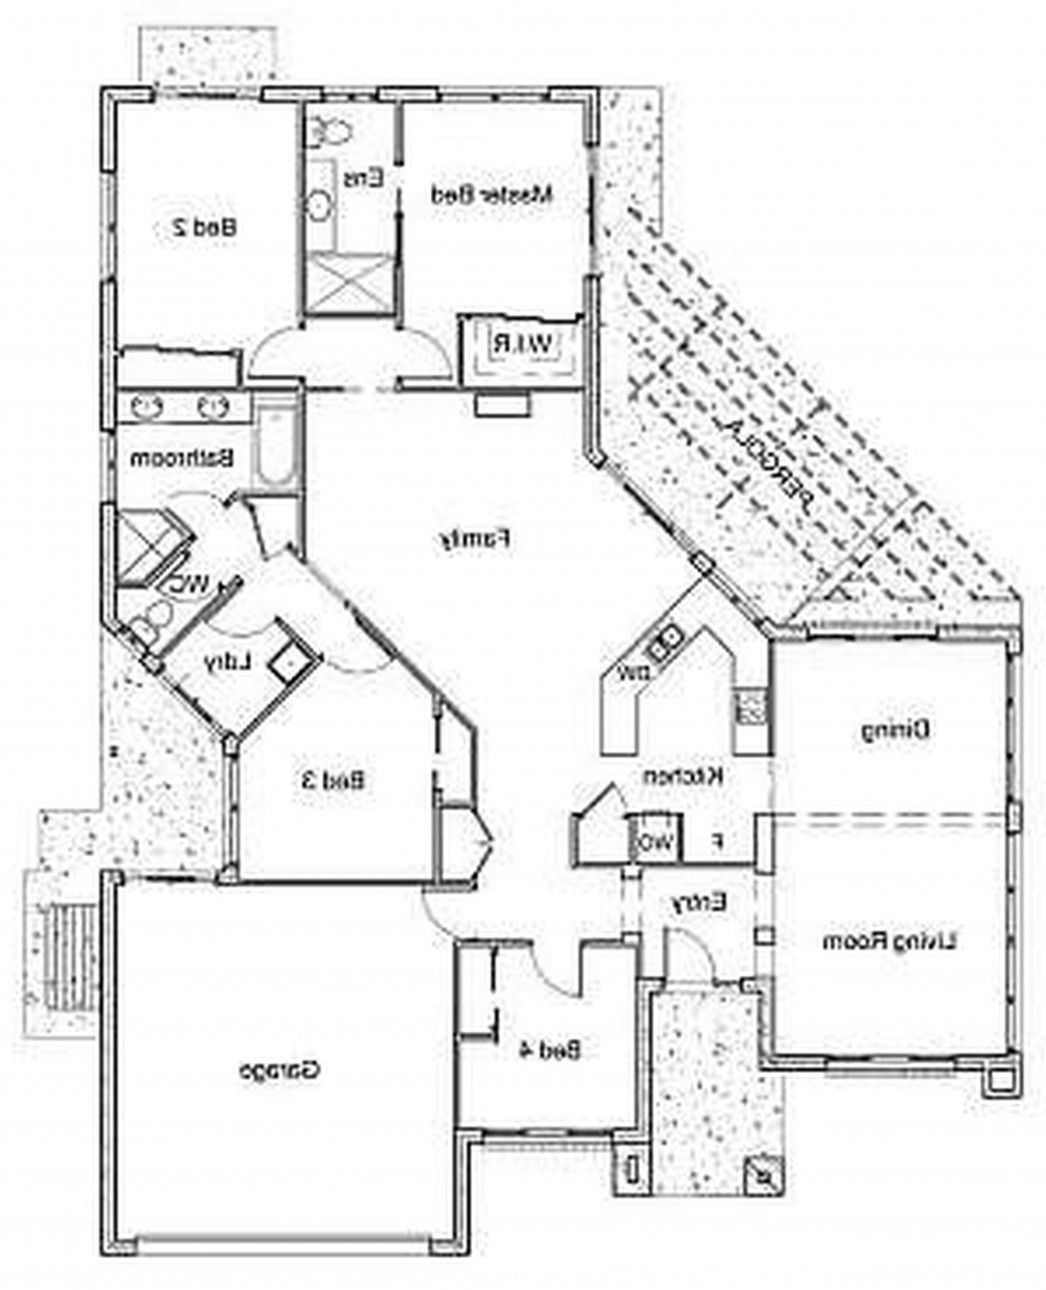 Architecture Houses Blueprints house interior minimalis modern house architecture and design